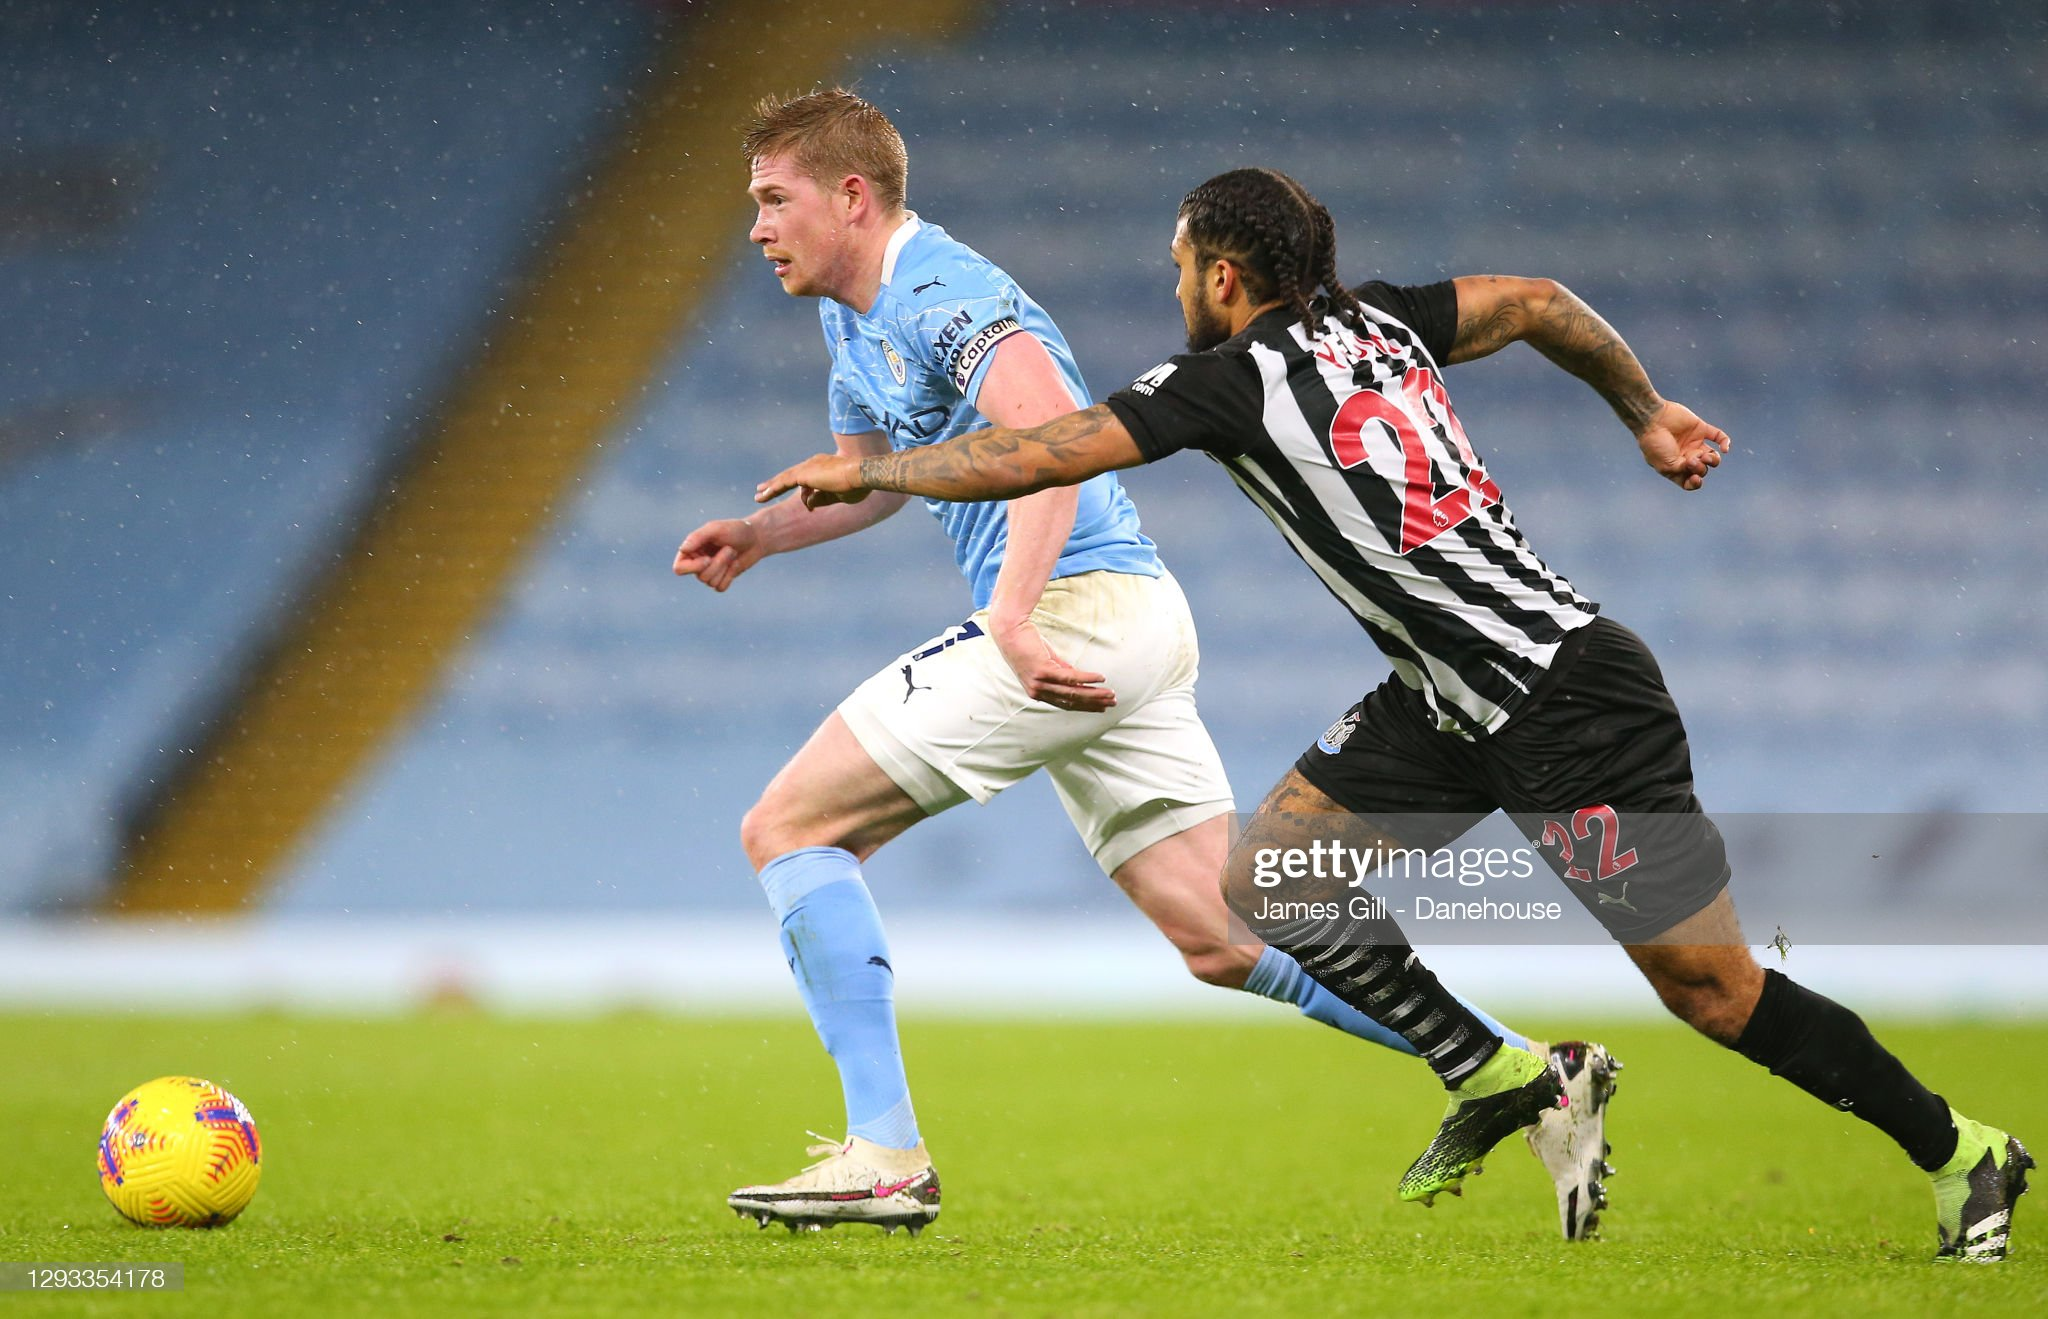 Newcastle vs Manchester City Preview, prediction and odds